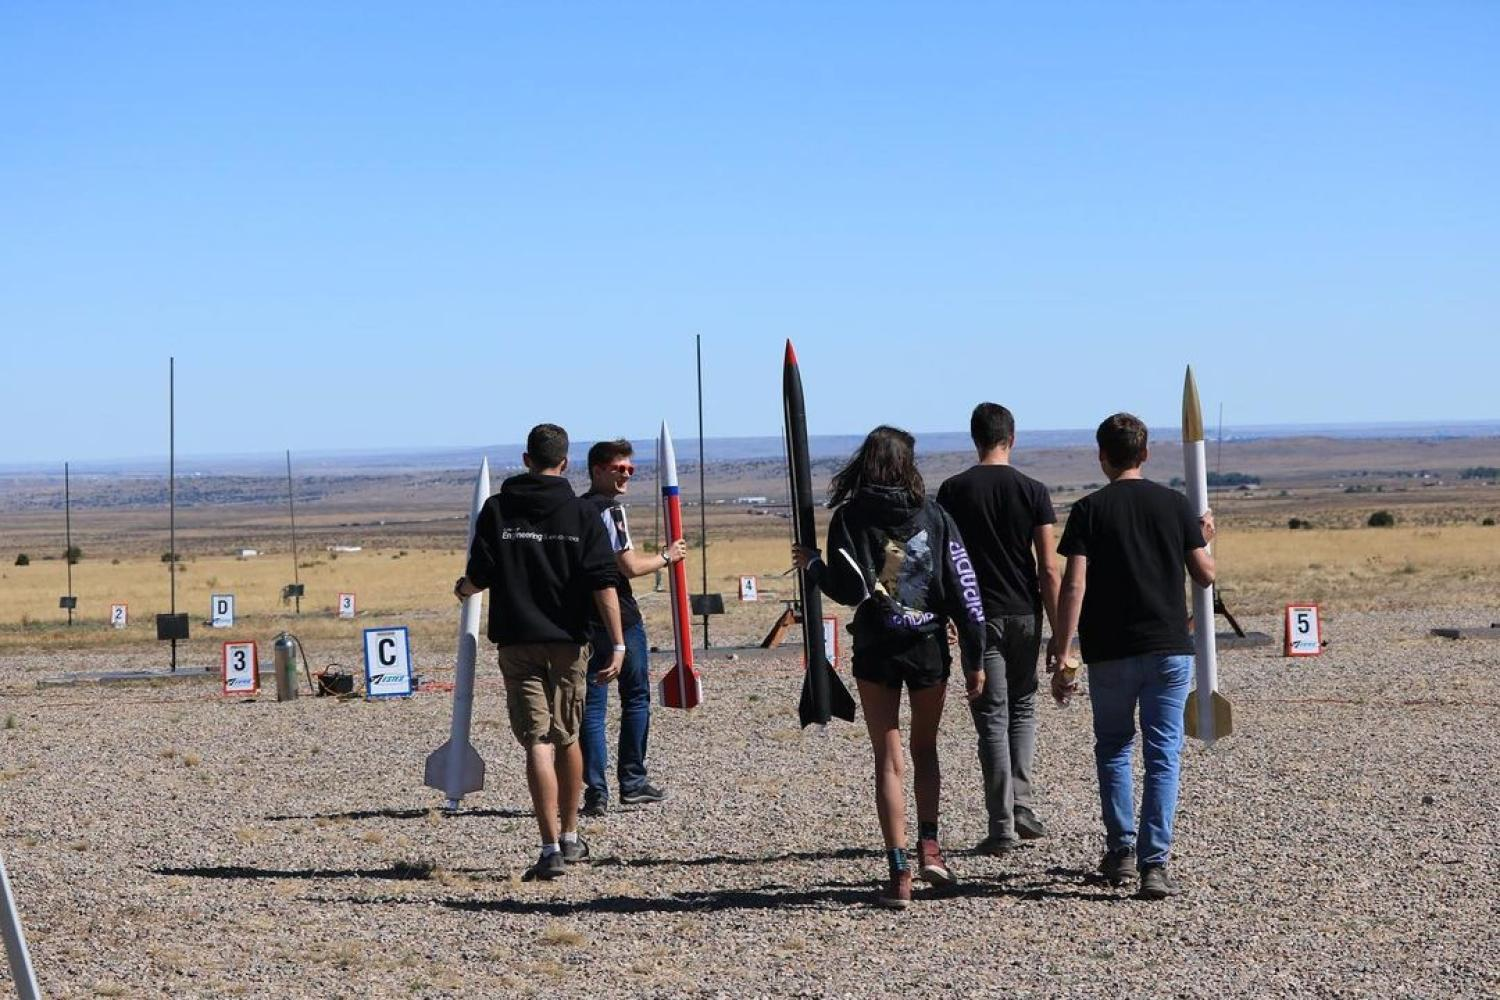 Several Sounding Rocket Lab team members prepare to launch their rockets.